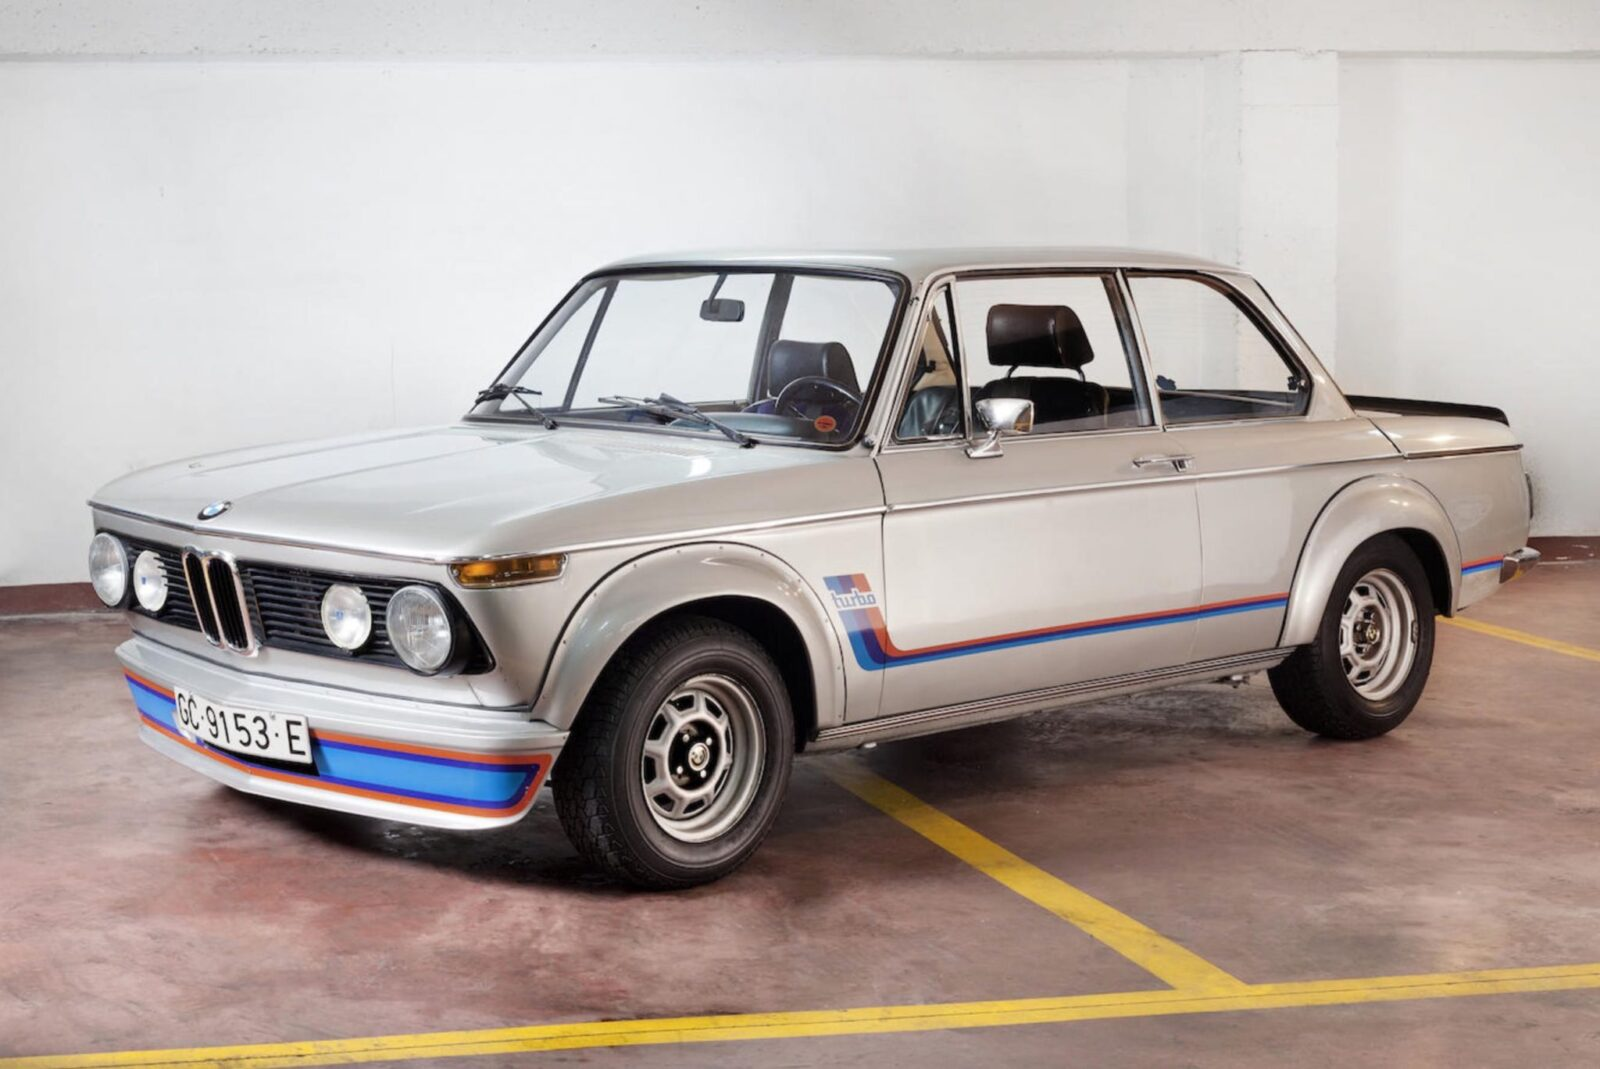 An Original 1974 Bmw 2002 Turbo